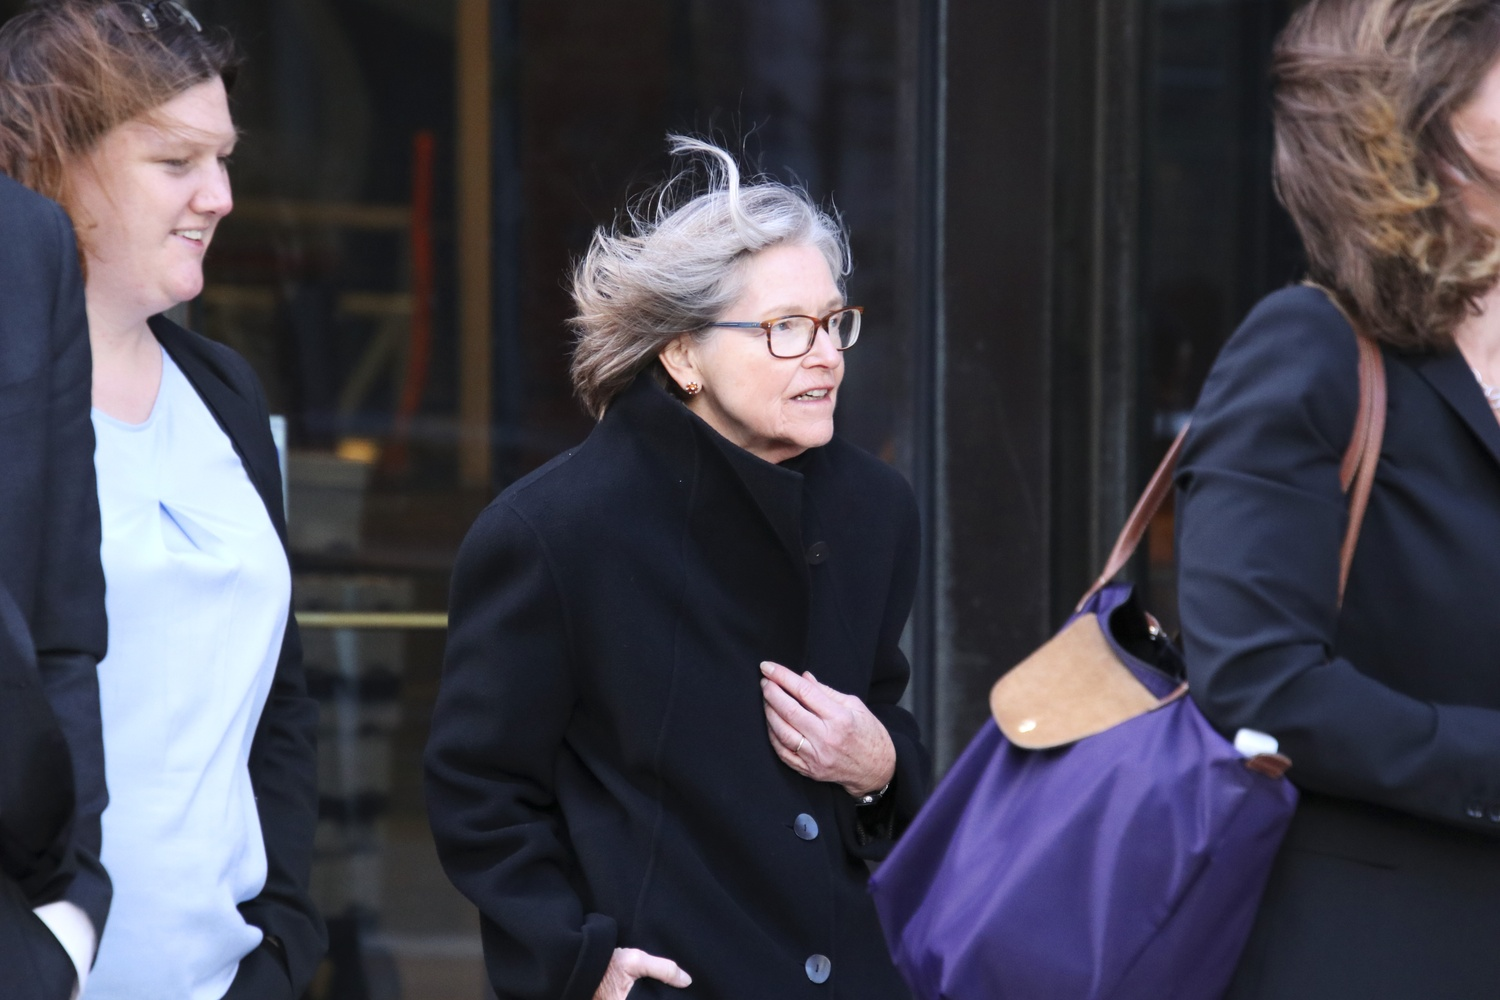 Director of Admissions Marlyn E. McGrath '70 exits the courthouse during the second week of the Harvard admissions trial.